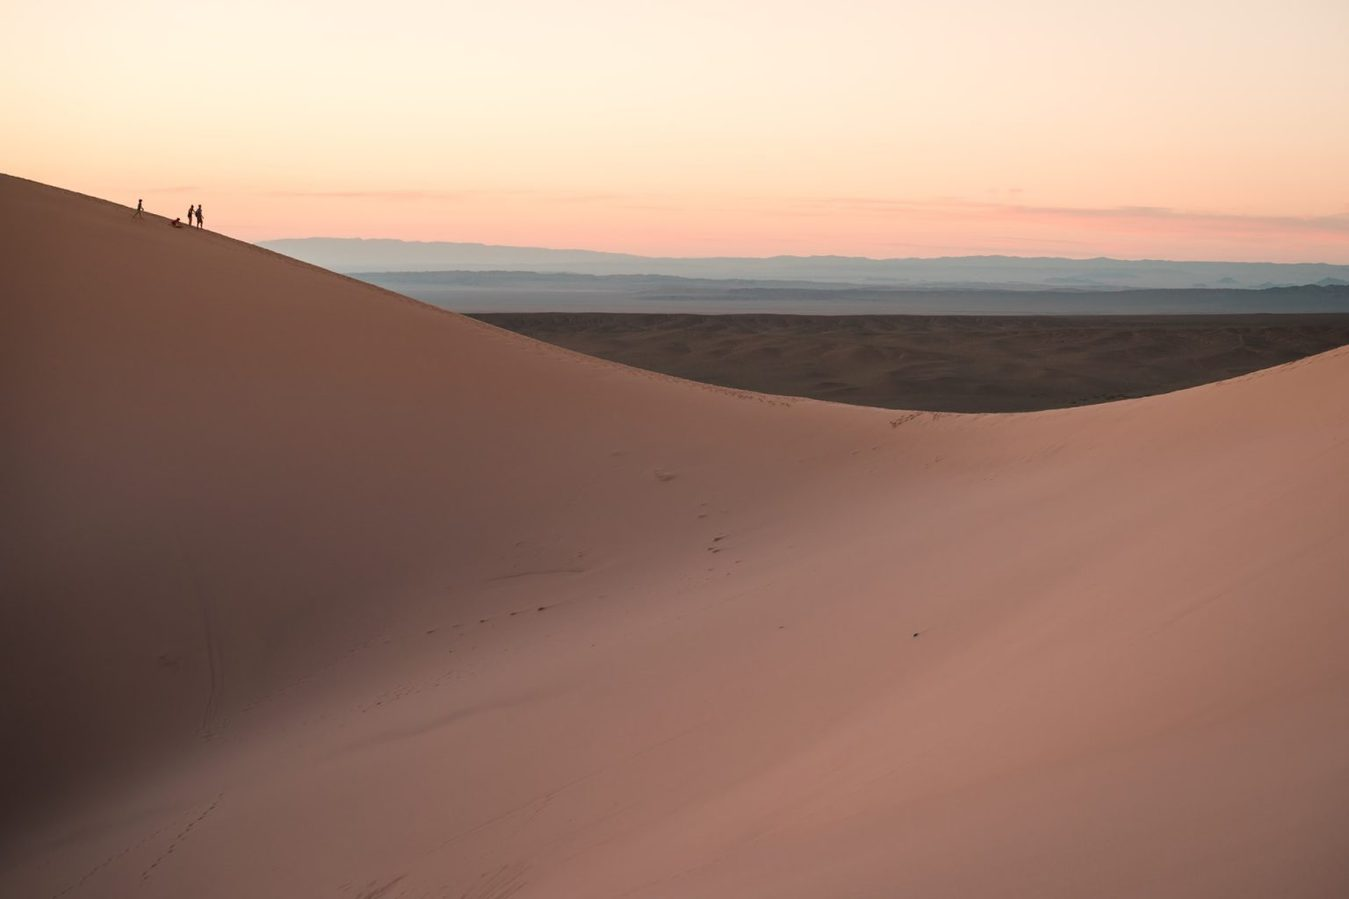 Smooth sand dunes at dusk